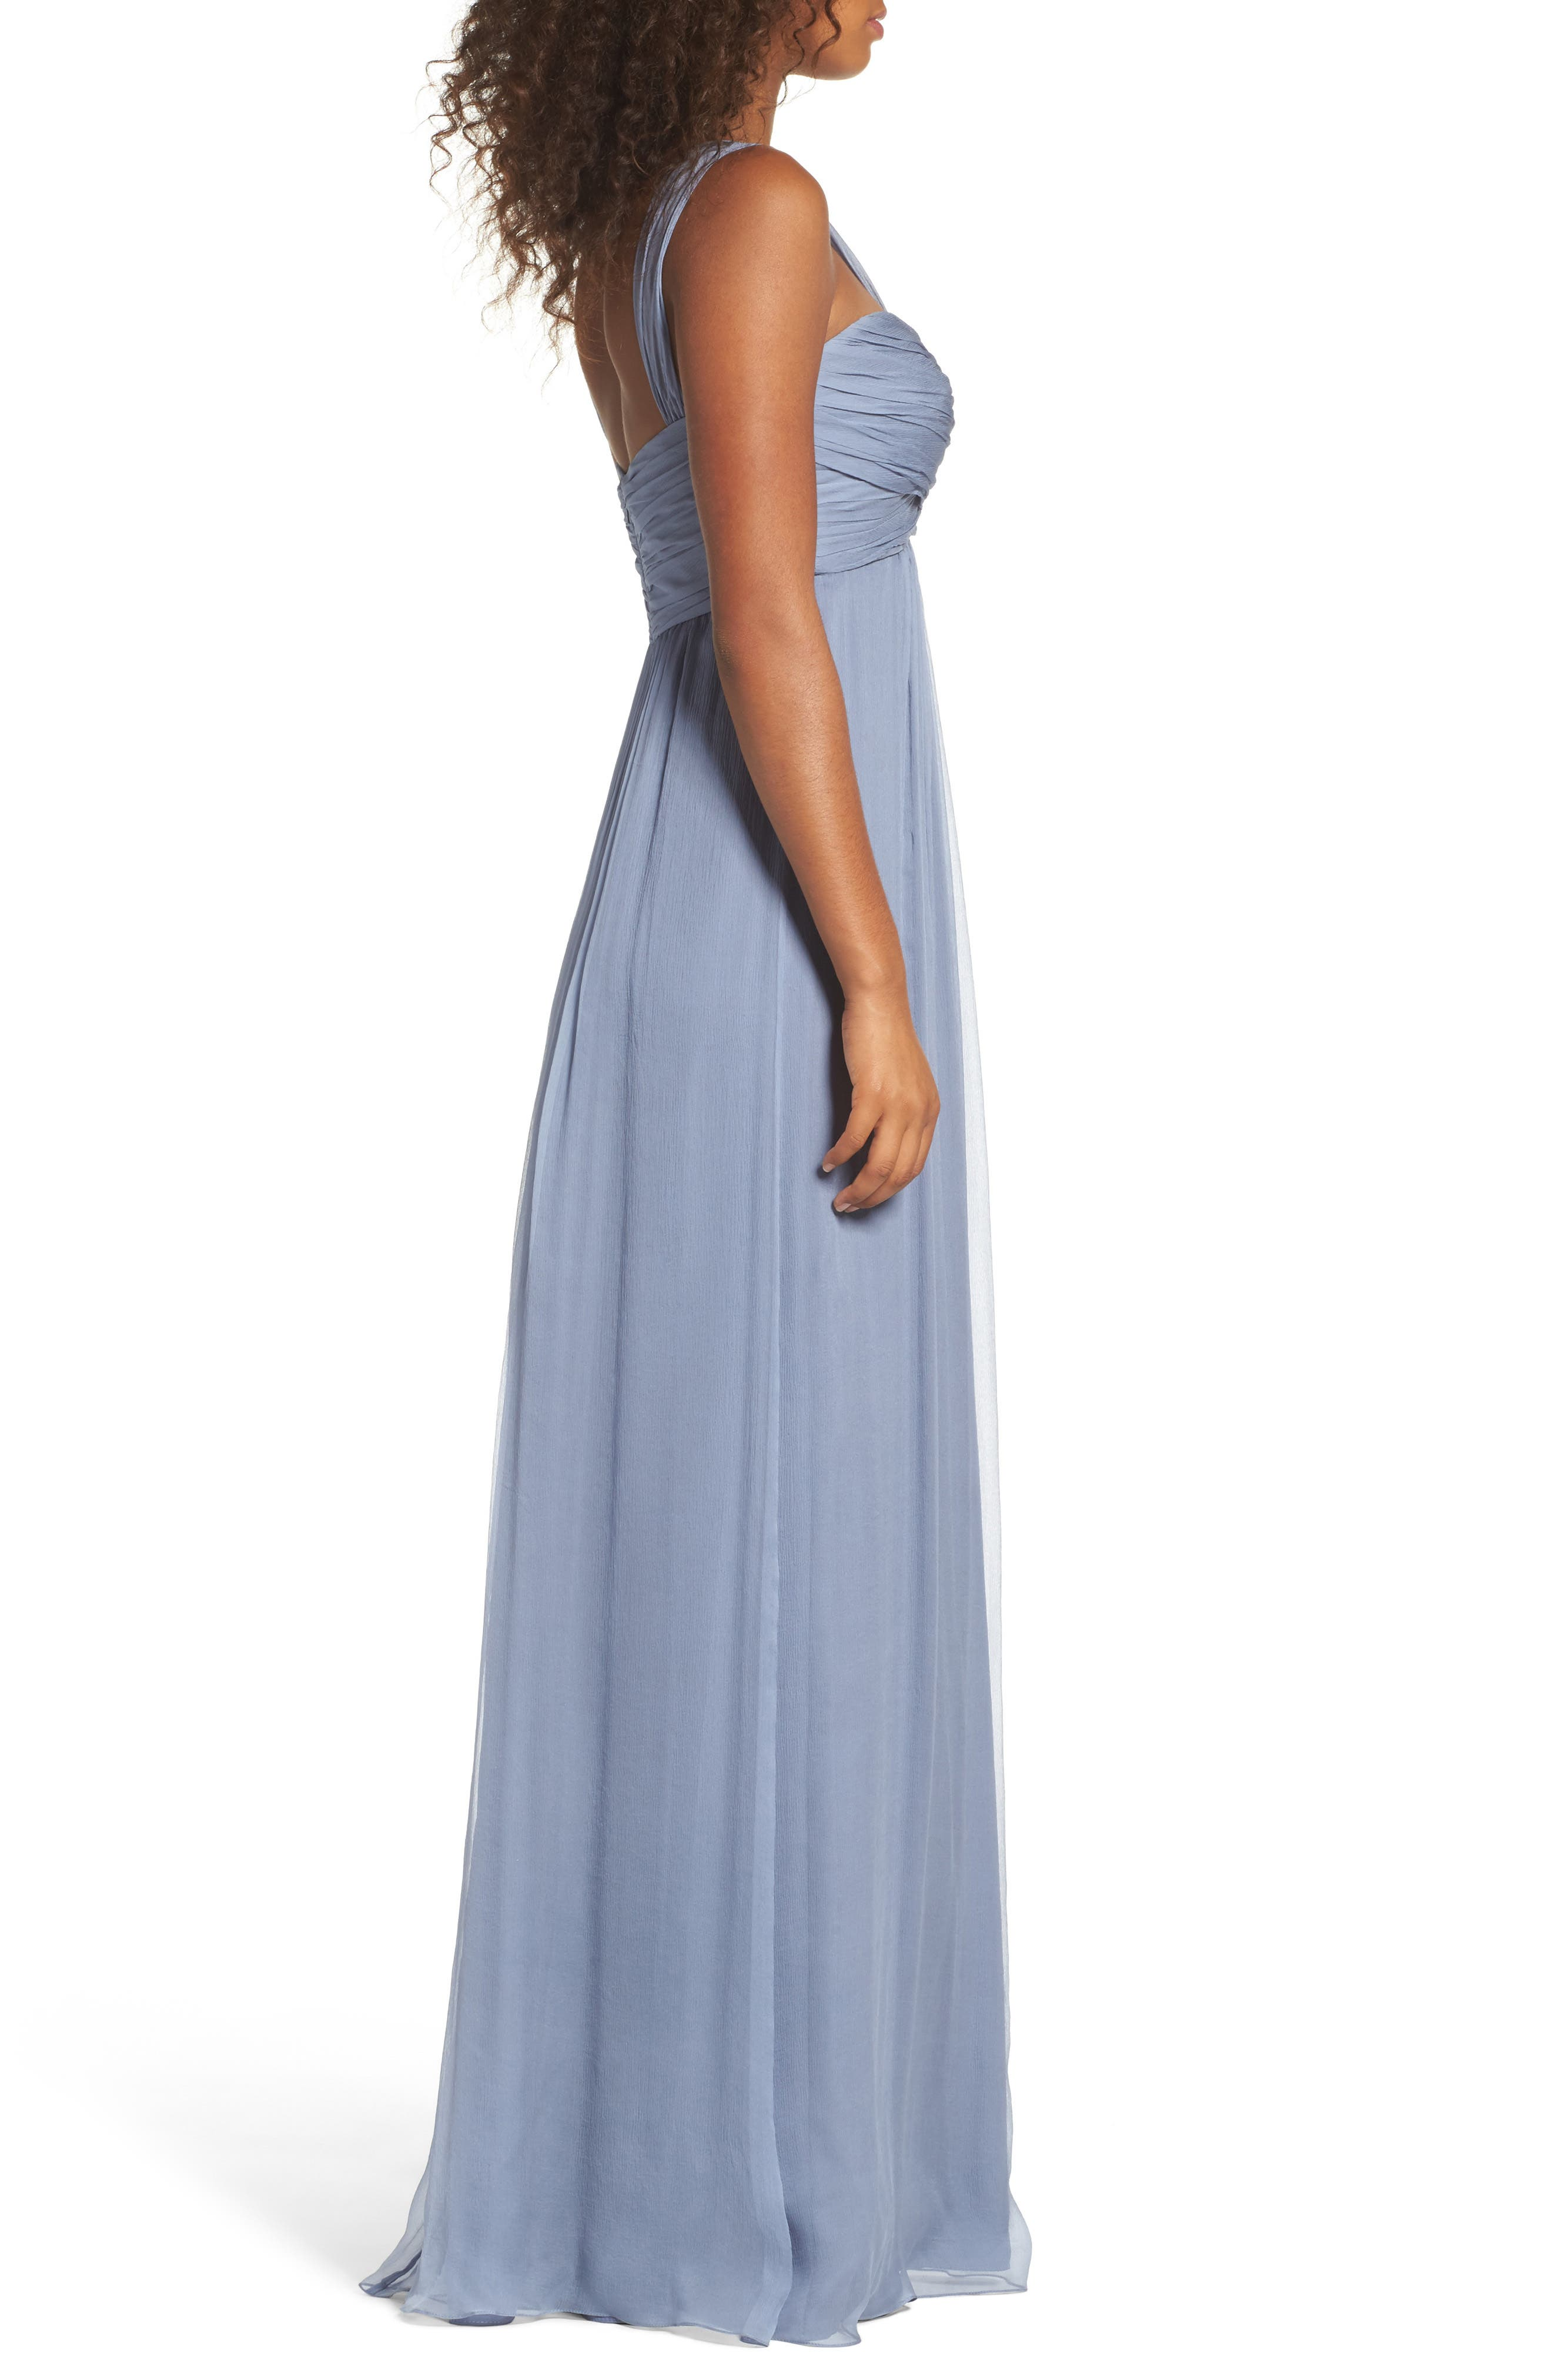 Corbin Crinkled Chiffon Empire Gown,                             Alternate thumbnail 5, color,